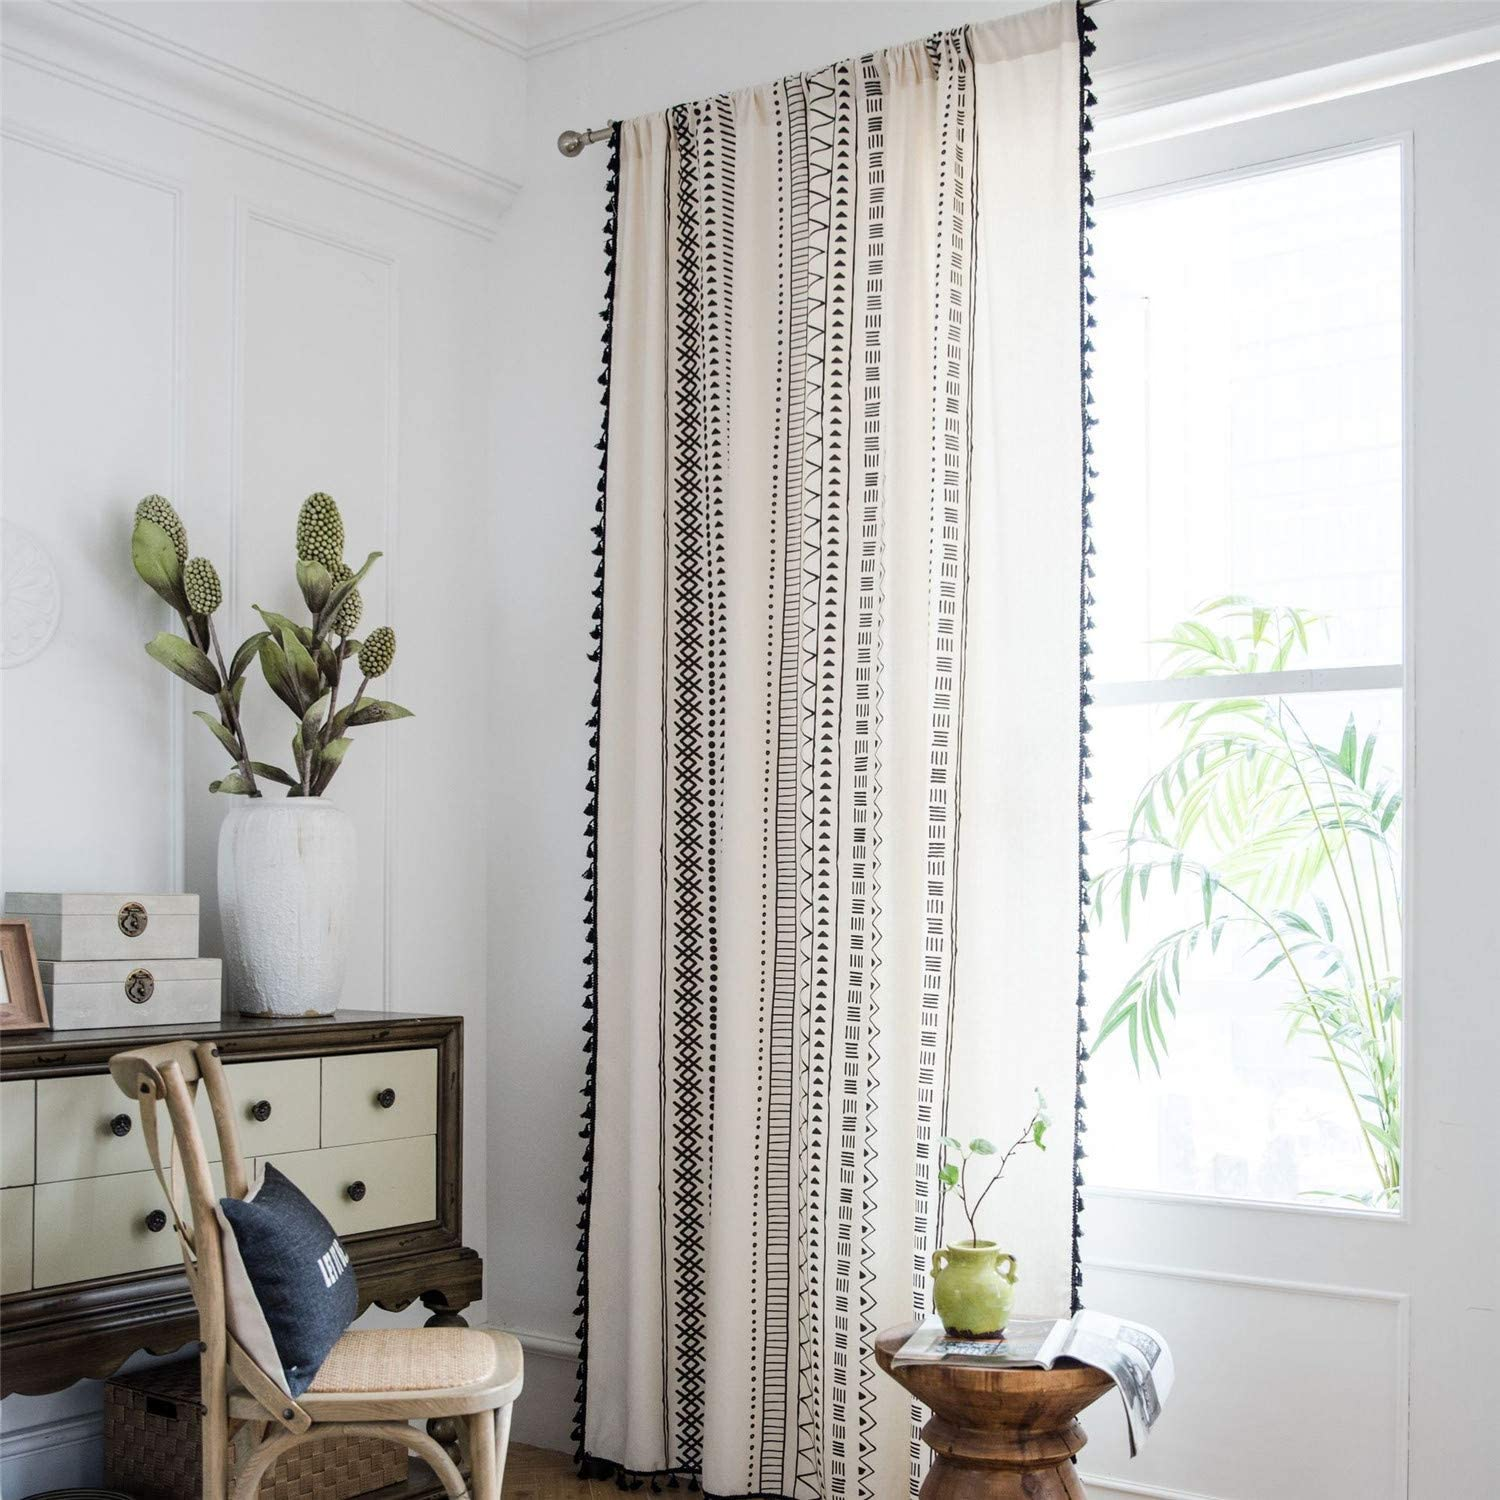 ABREEZE Bohemian Cotton Linen Window Curtains, Semi Blackout Farmhouse Boho Style Drapes Rod Pocket Window Curtain Panel with Tassels for Living Room (Geometric, 59 W x 63 L)